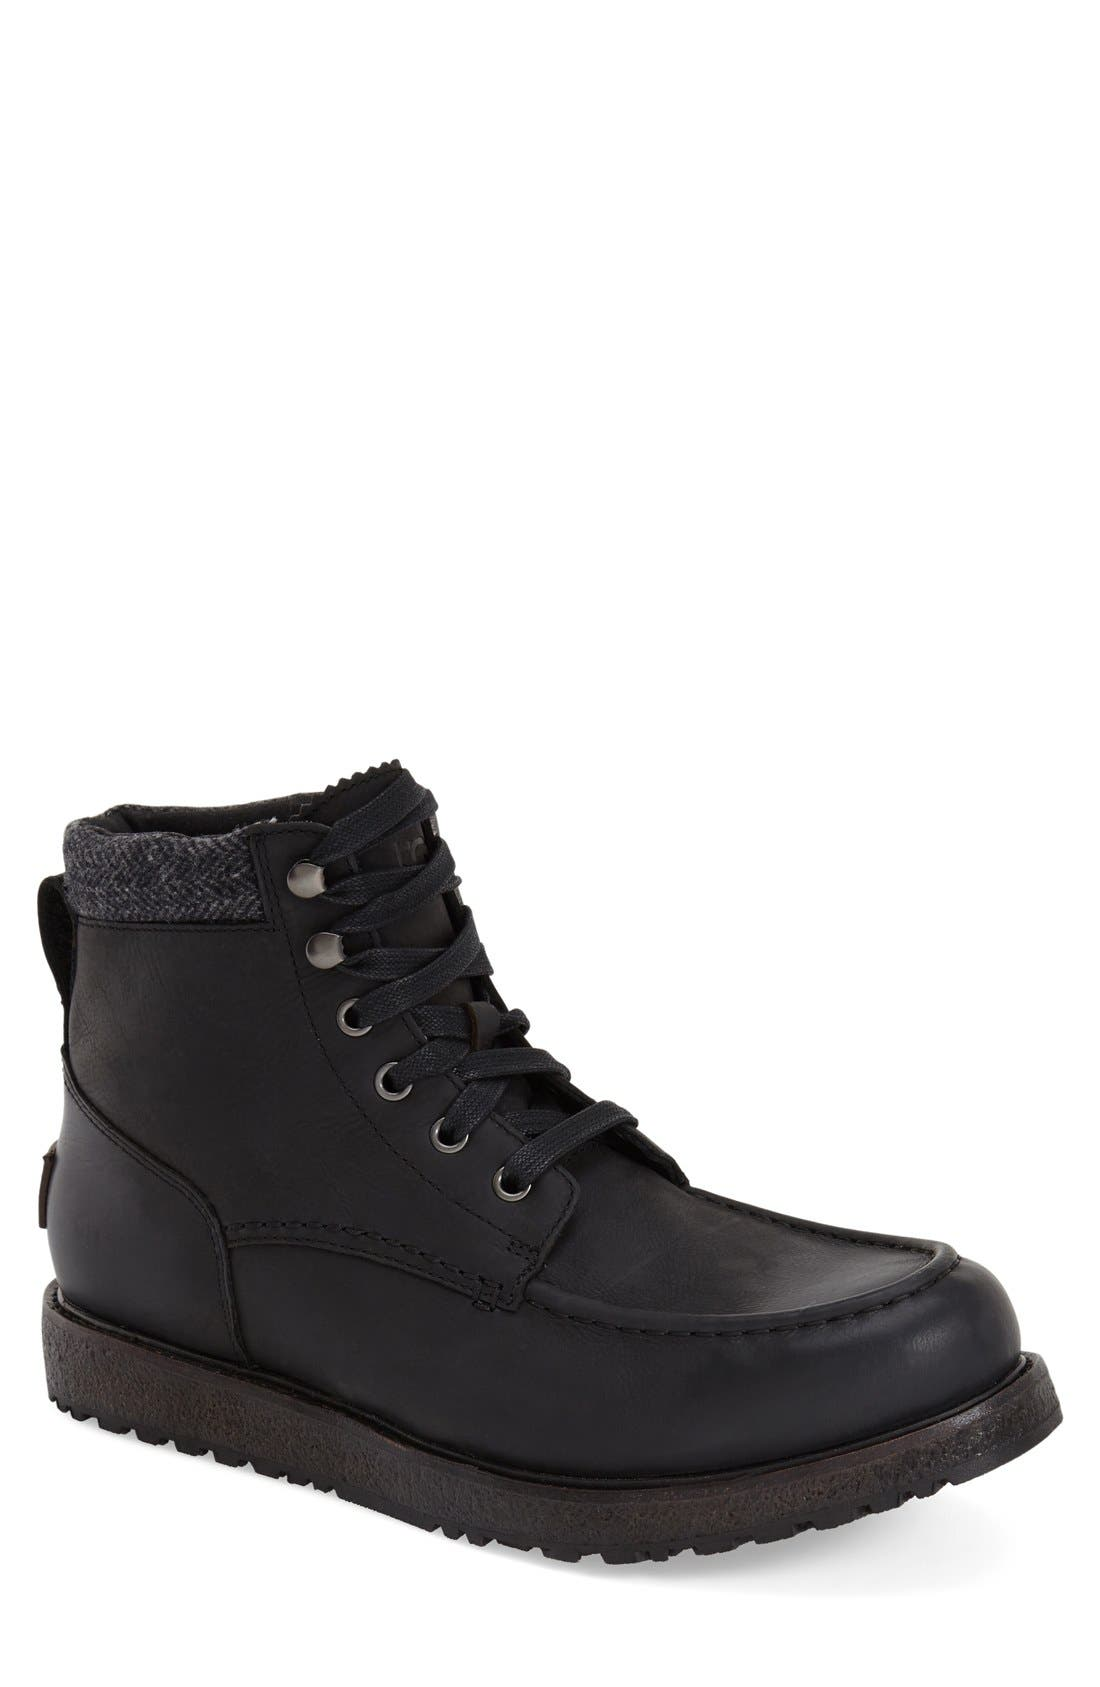 Alternate Image 1 Selected - UGG® Merrick Moc Toe Boot (Men)